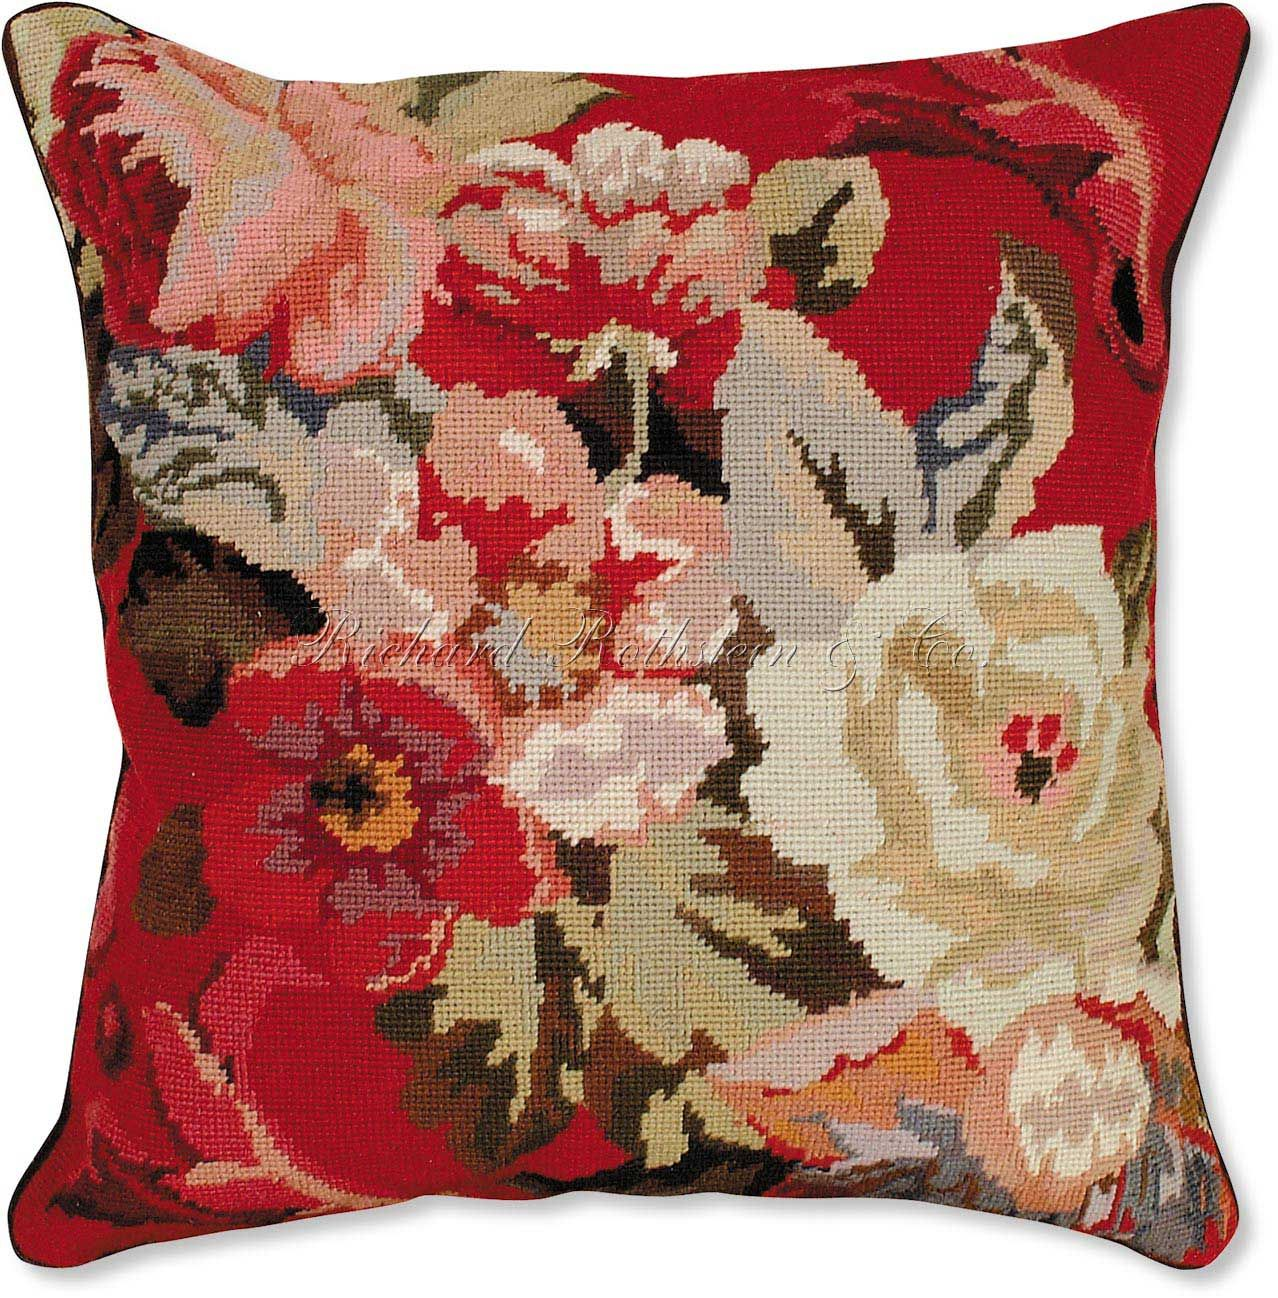 fancy sofa pillows small grey beds uk decorative roses on red needlepoint pillow